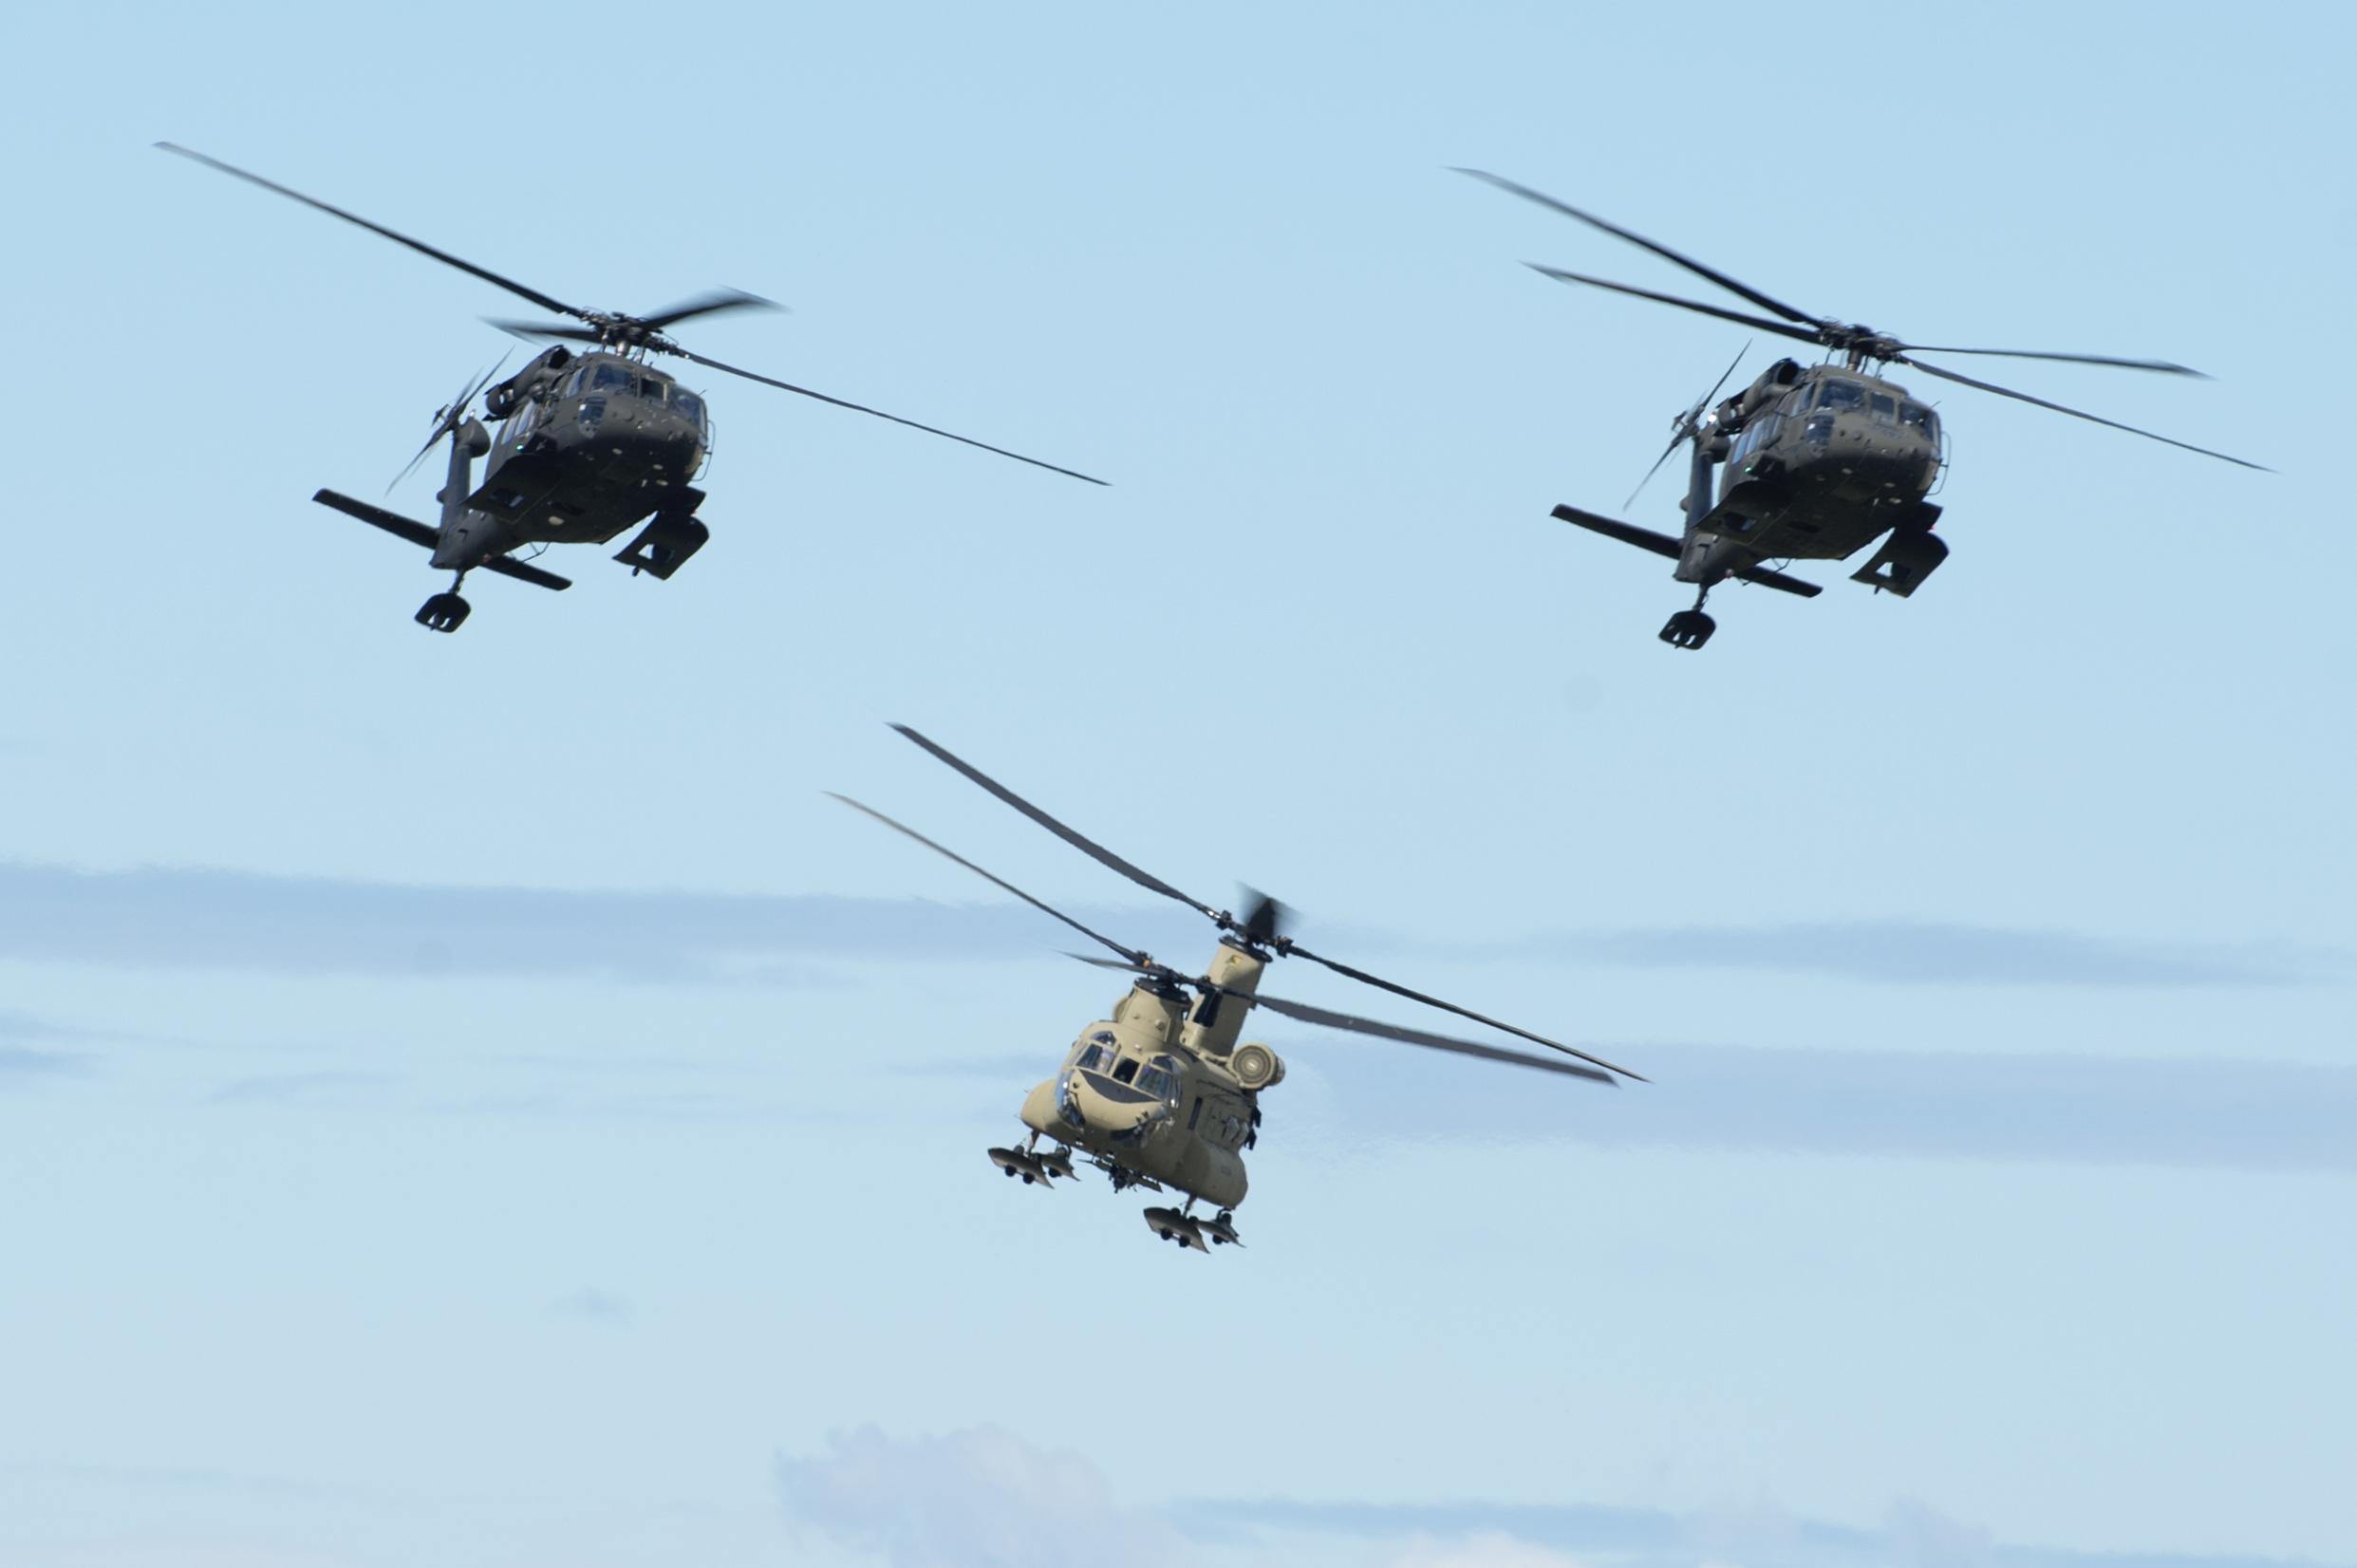 Two Alaska Army National Guard UH-60 Black Hawks and a U.S. Army Alaska CH-47 Chinook approach the flight line as part of the Joint Forces Demonstration during the Arctic Thunder Open House at Joint Base Elmendorf-Richardson, Alaska, July 1, 2018. This biennial event hosted by JBER is one of the largest in the state and one of the premier aerial demonstrations in the world. The event features multiple performers and ground acts to include the JBER joint forces, U.S. Air Force F-22 and U.S. Air Force Thunderbirds demonstrations teams, June 30-July 1. (U.S. Air Force photo by Alejandro Peña)